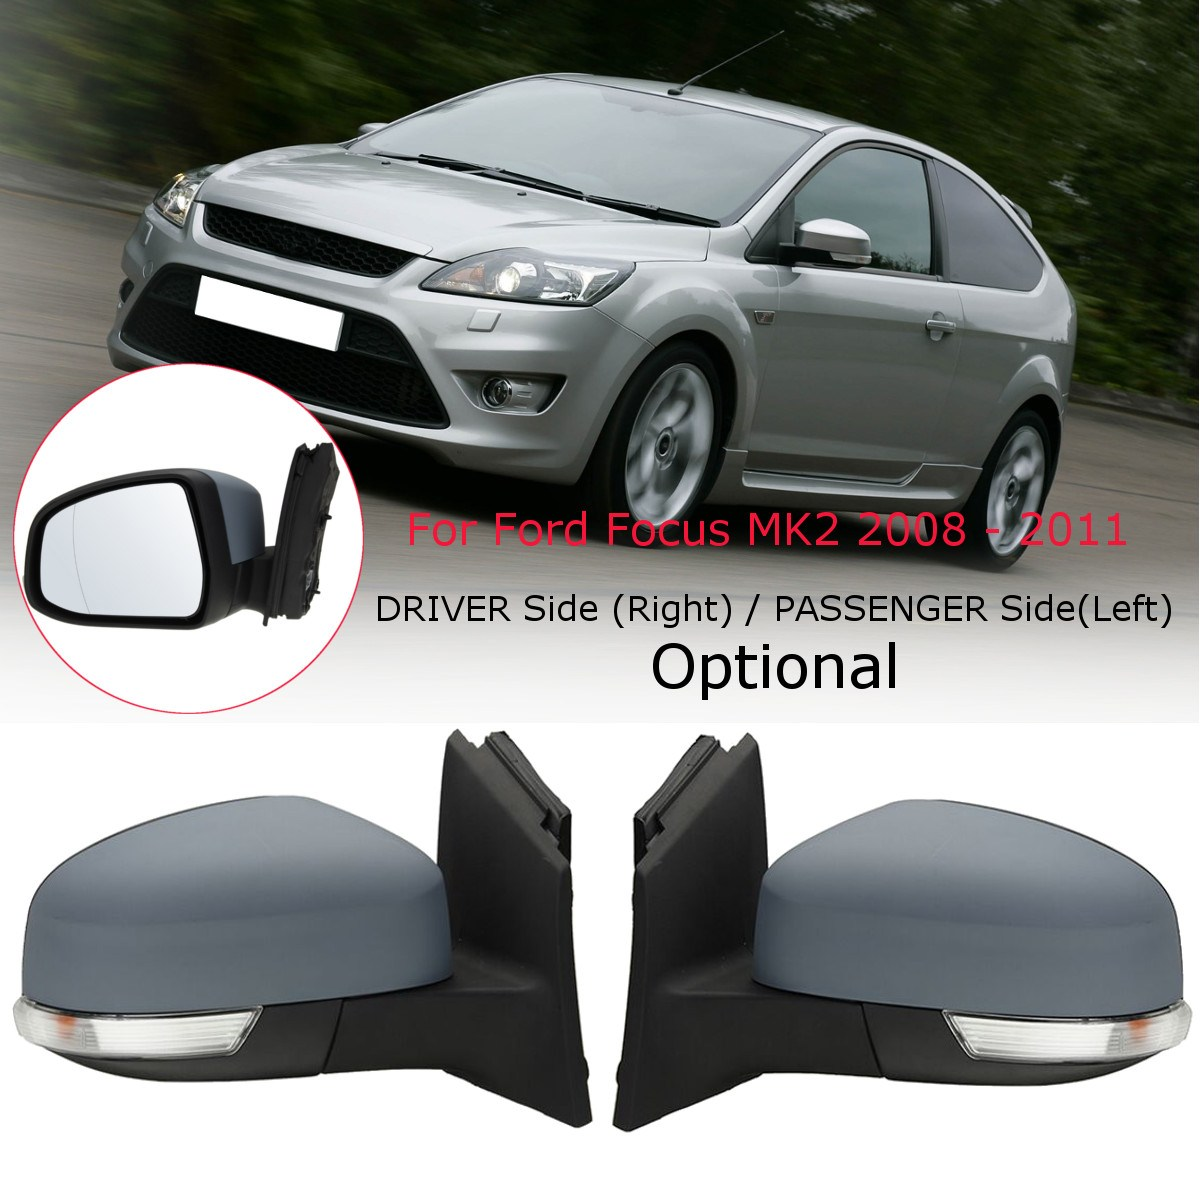 Car Door Electric Wing Mirror Driver /Passenger Side For Ford for Focus MK2 2008 2009 2010 2011 дефлектор капота novline темный ford focus 2008 2010 nld sfofo30812